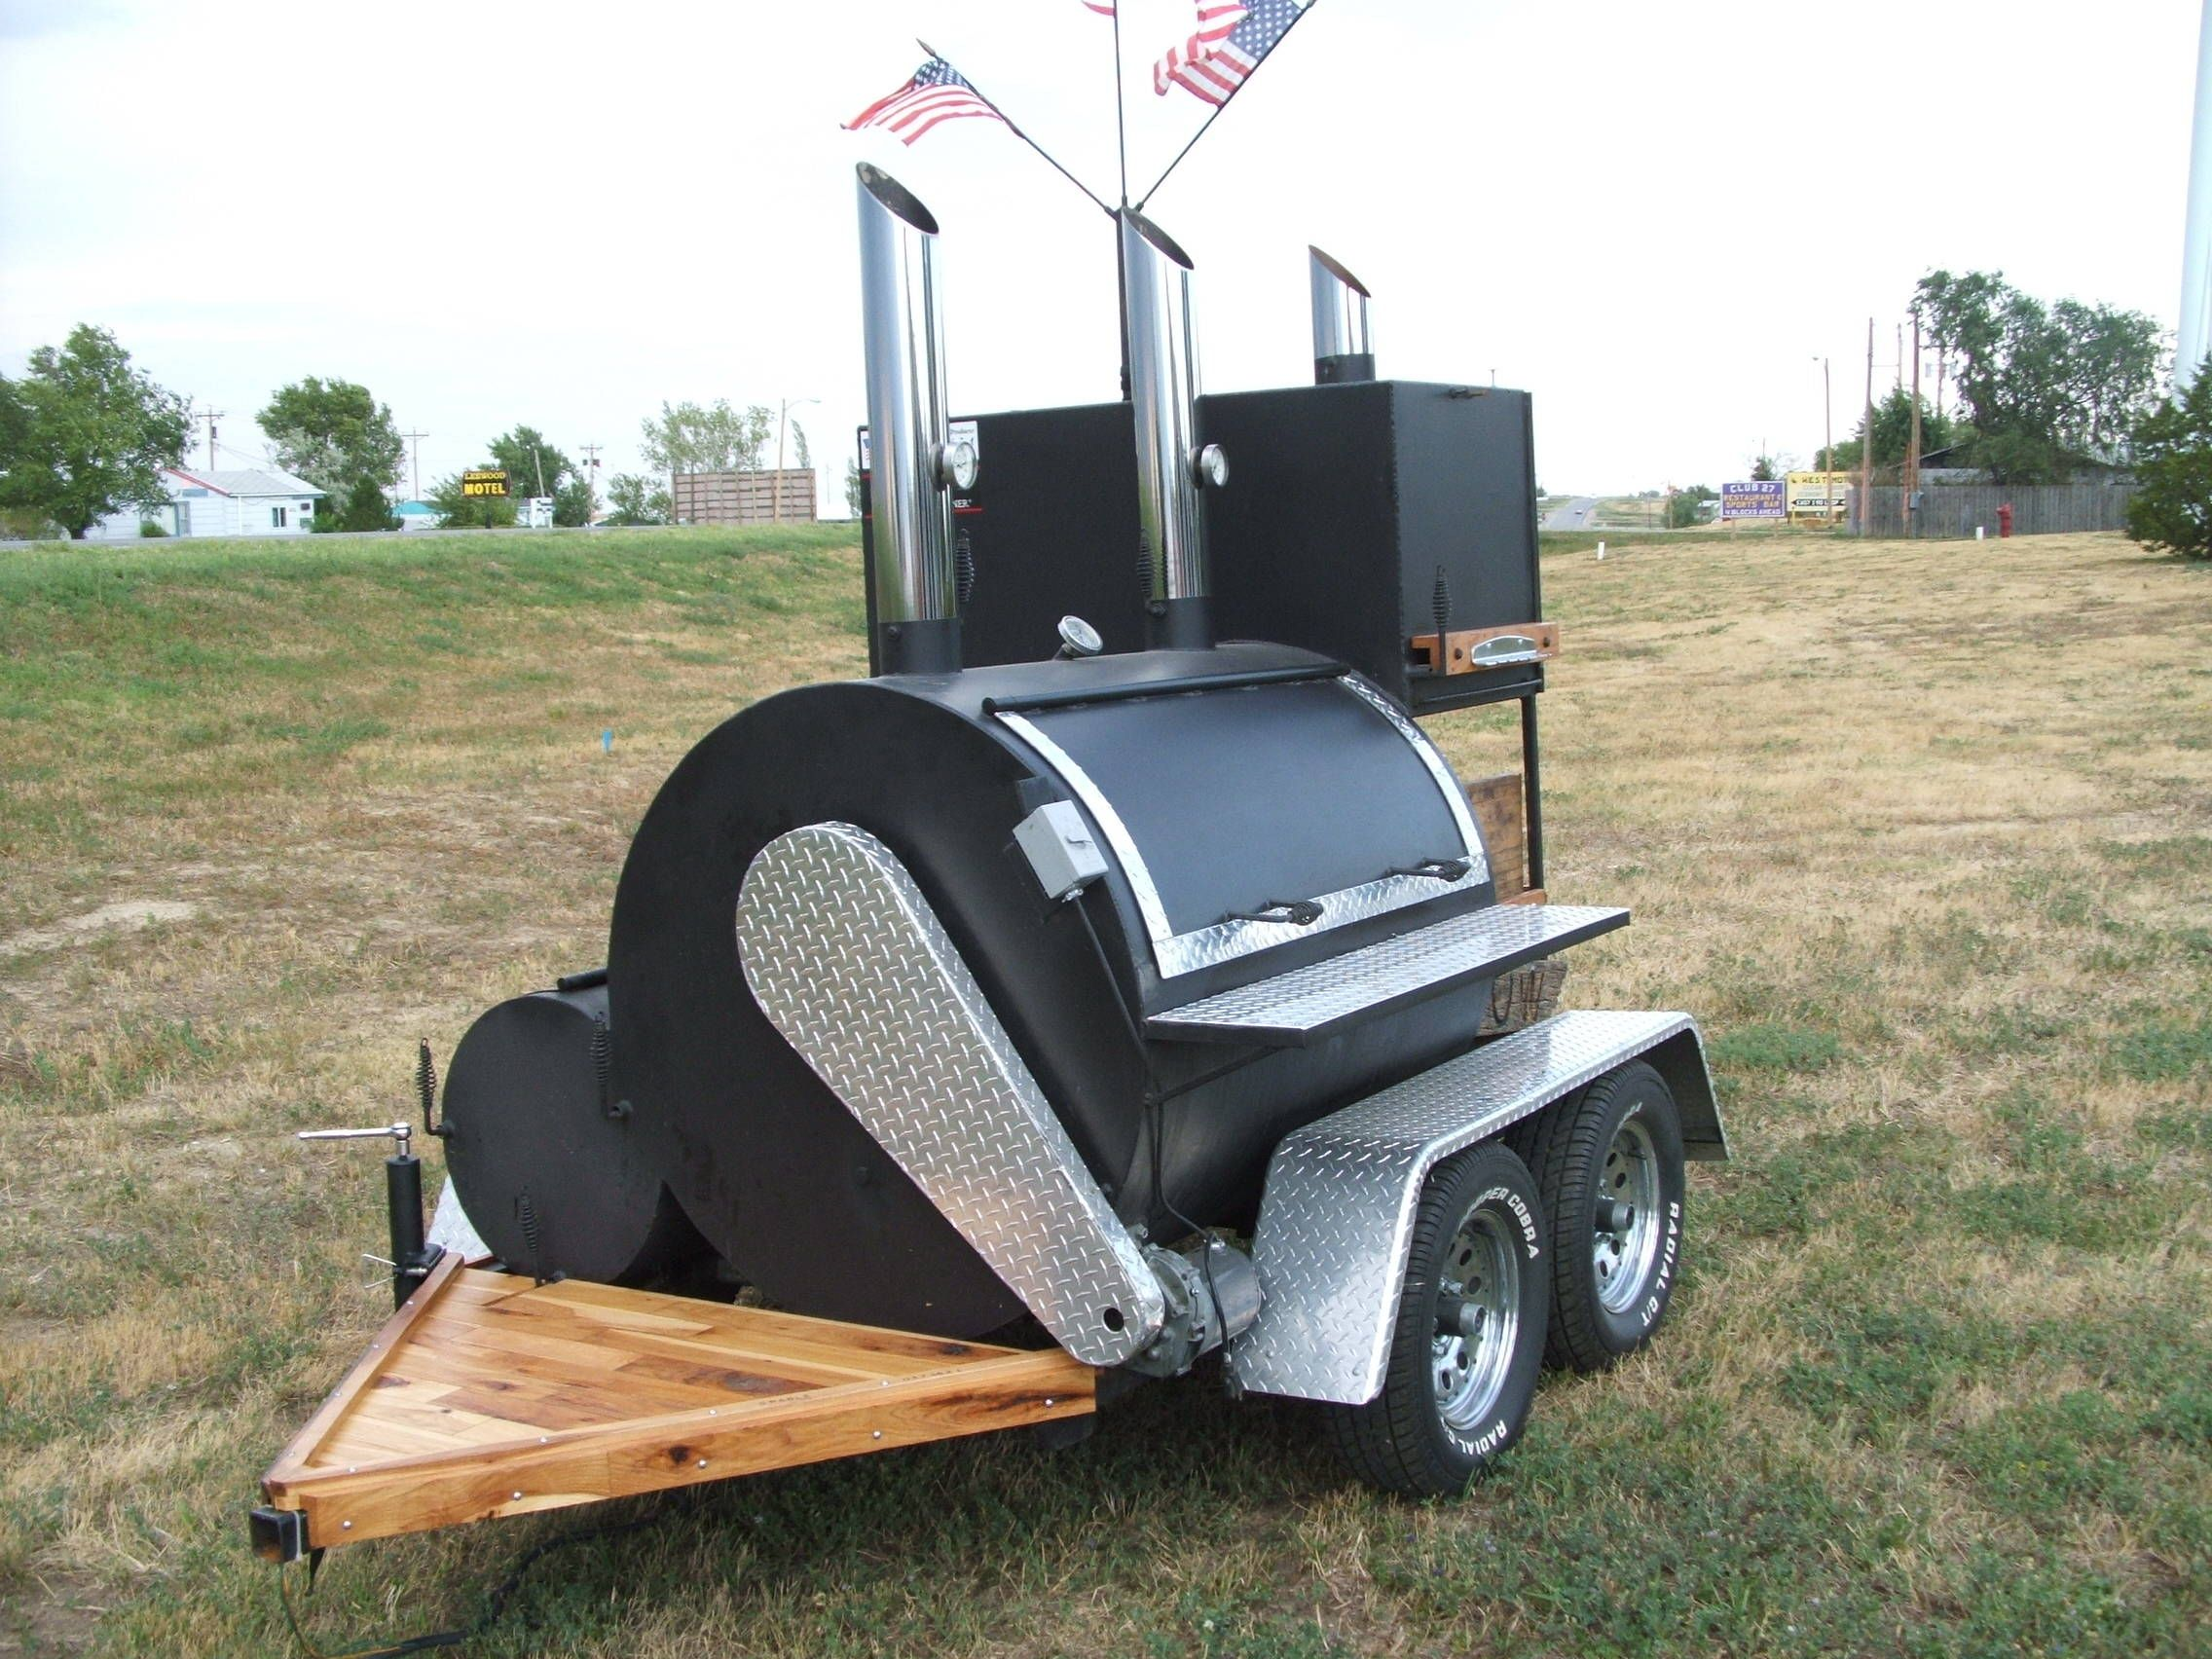 Smoke bomb submit an entry show off your custom bbq smoker